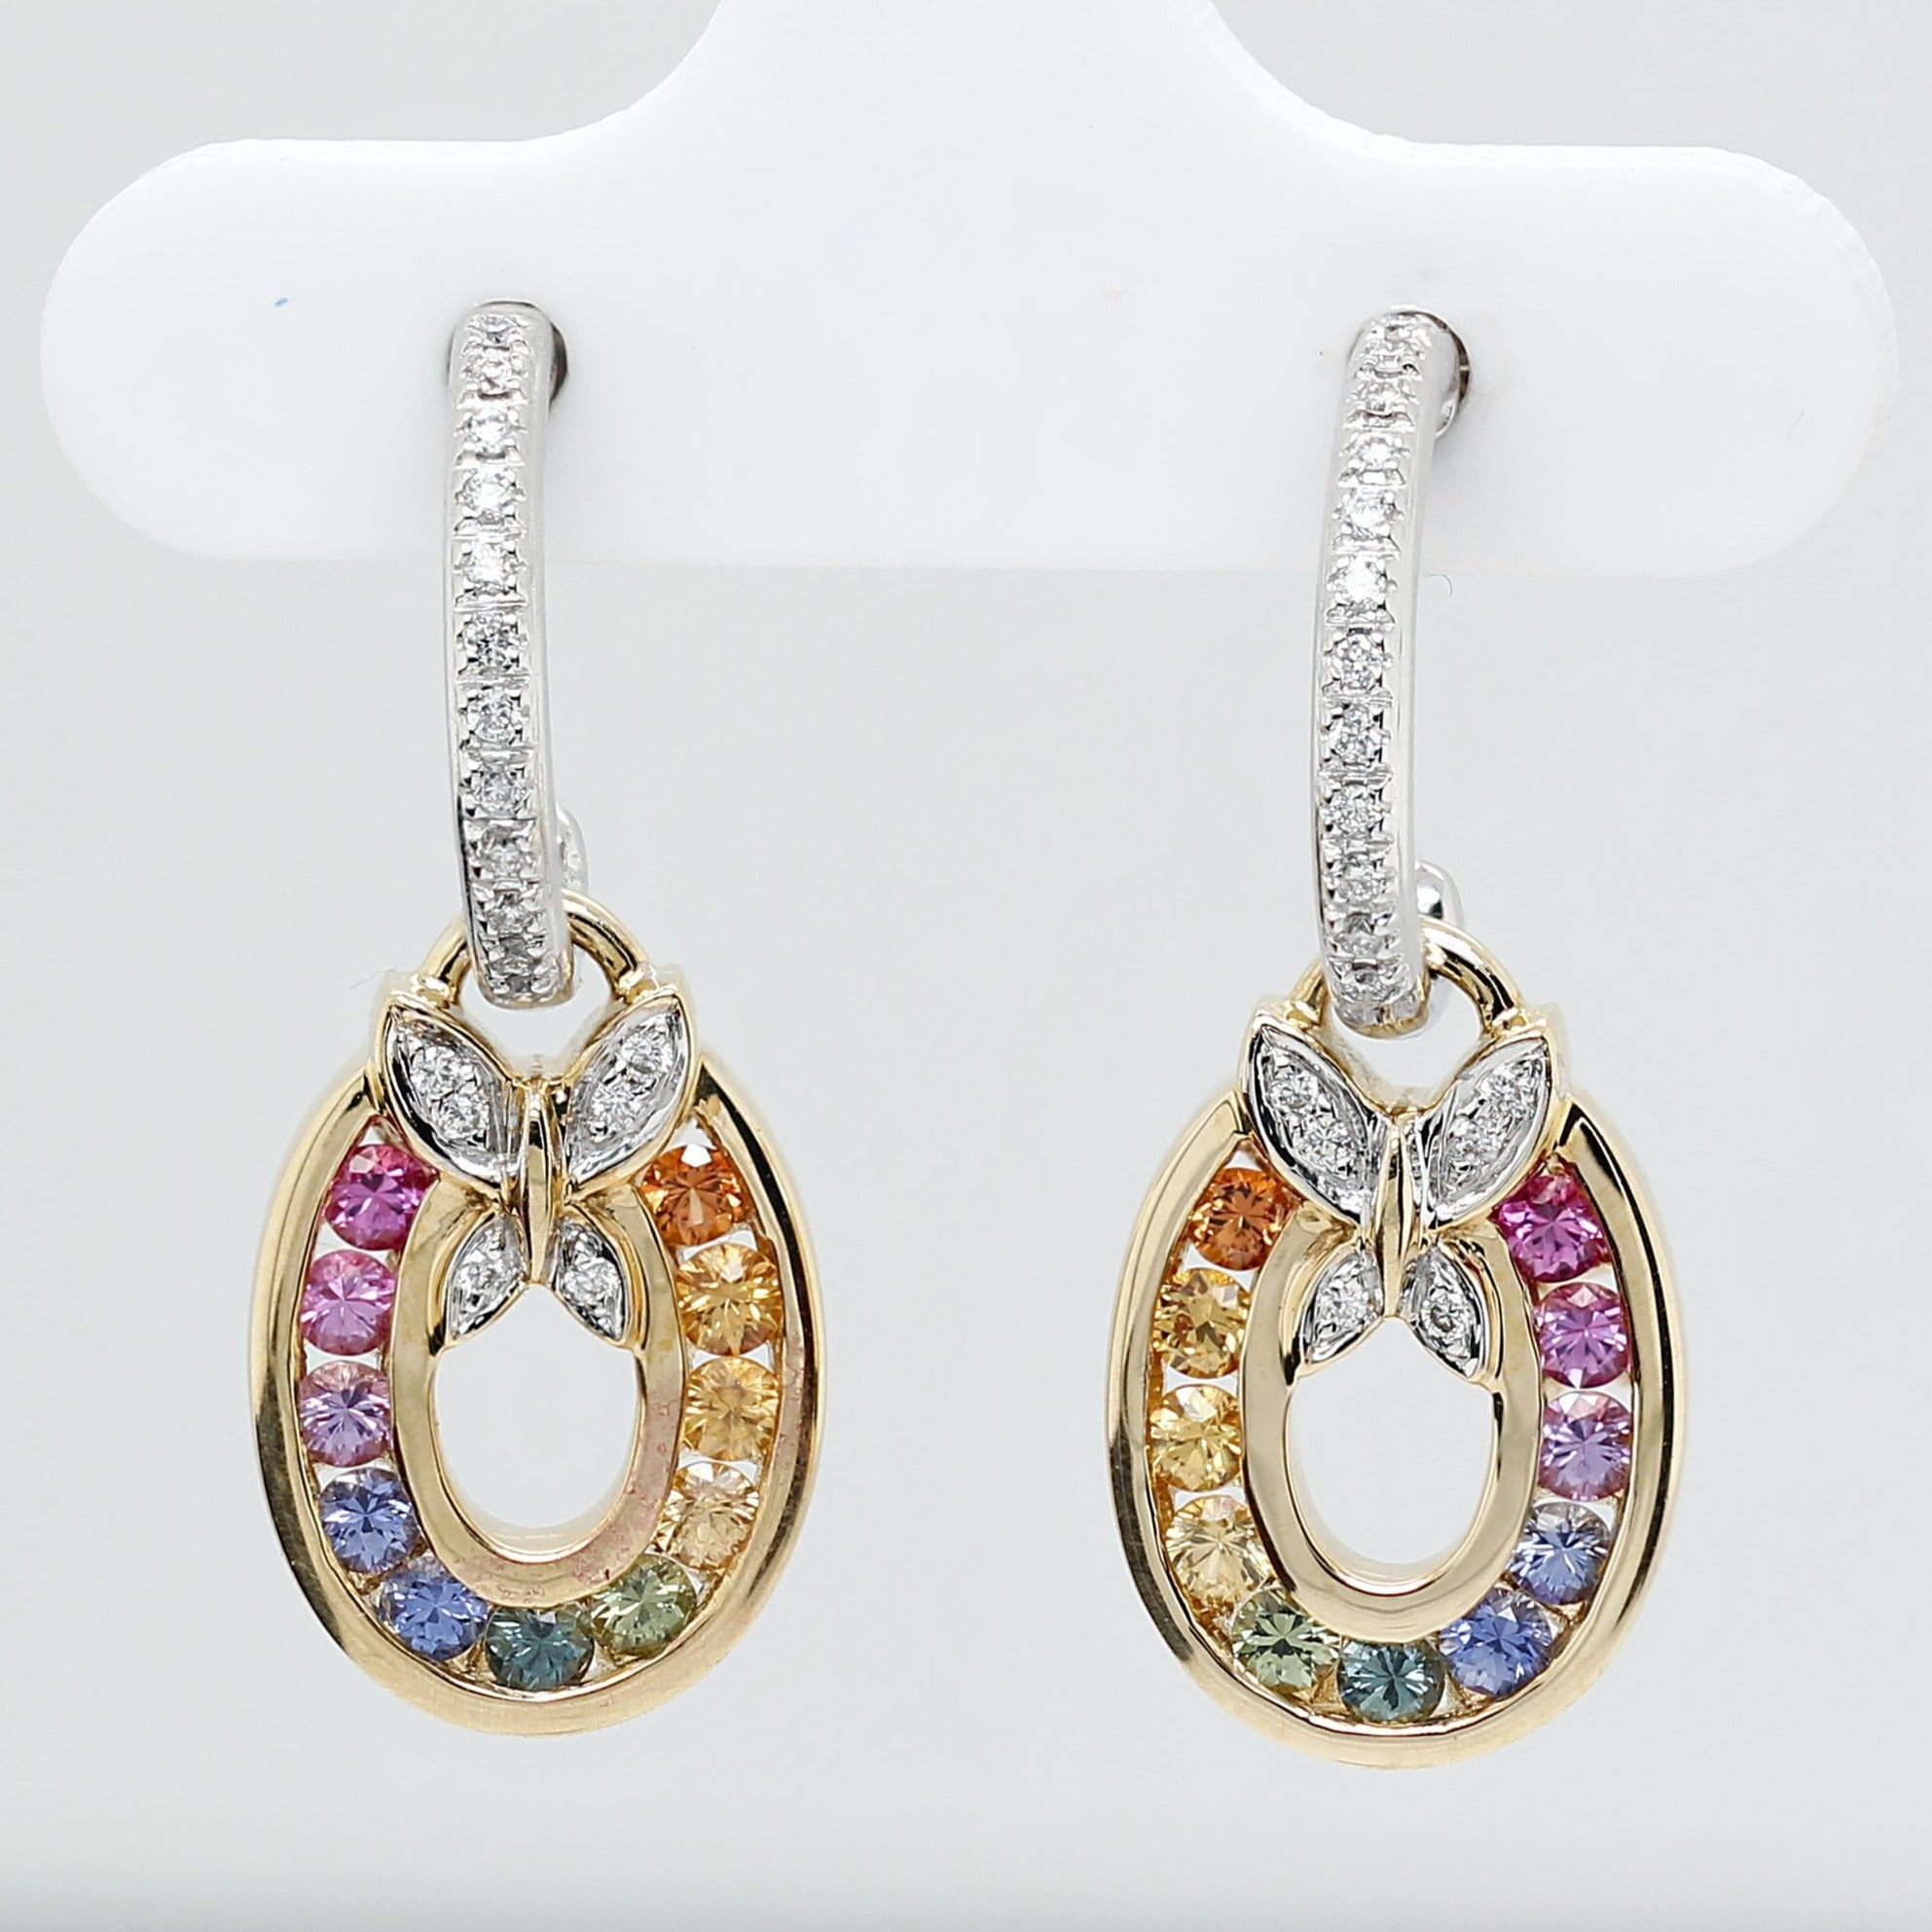 Dangling oval earrings with top-quality round brilliant cut natural sapphires and diamonds